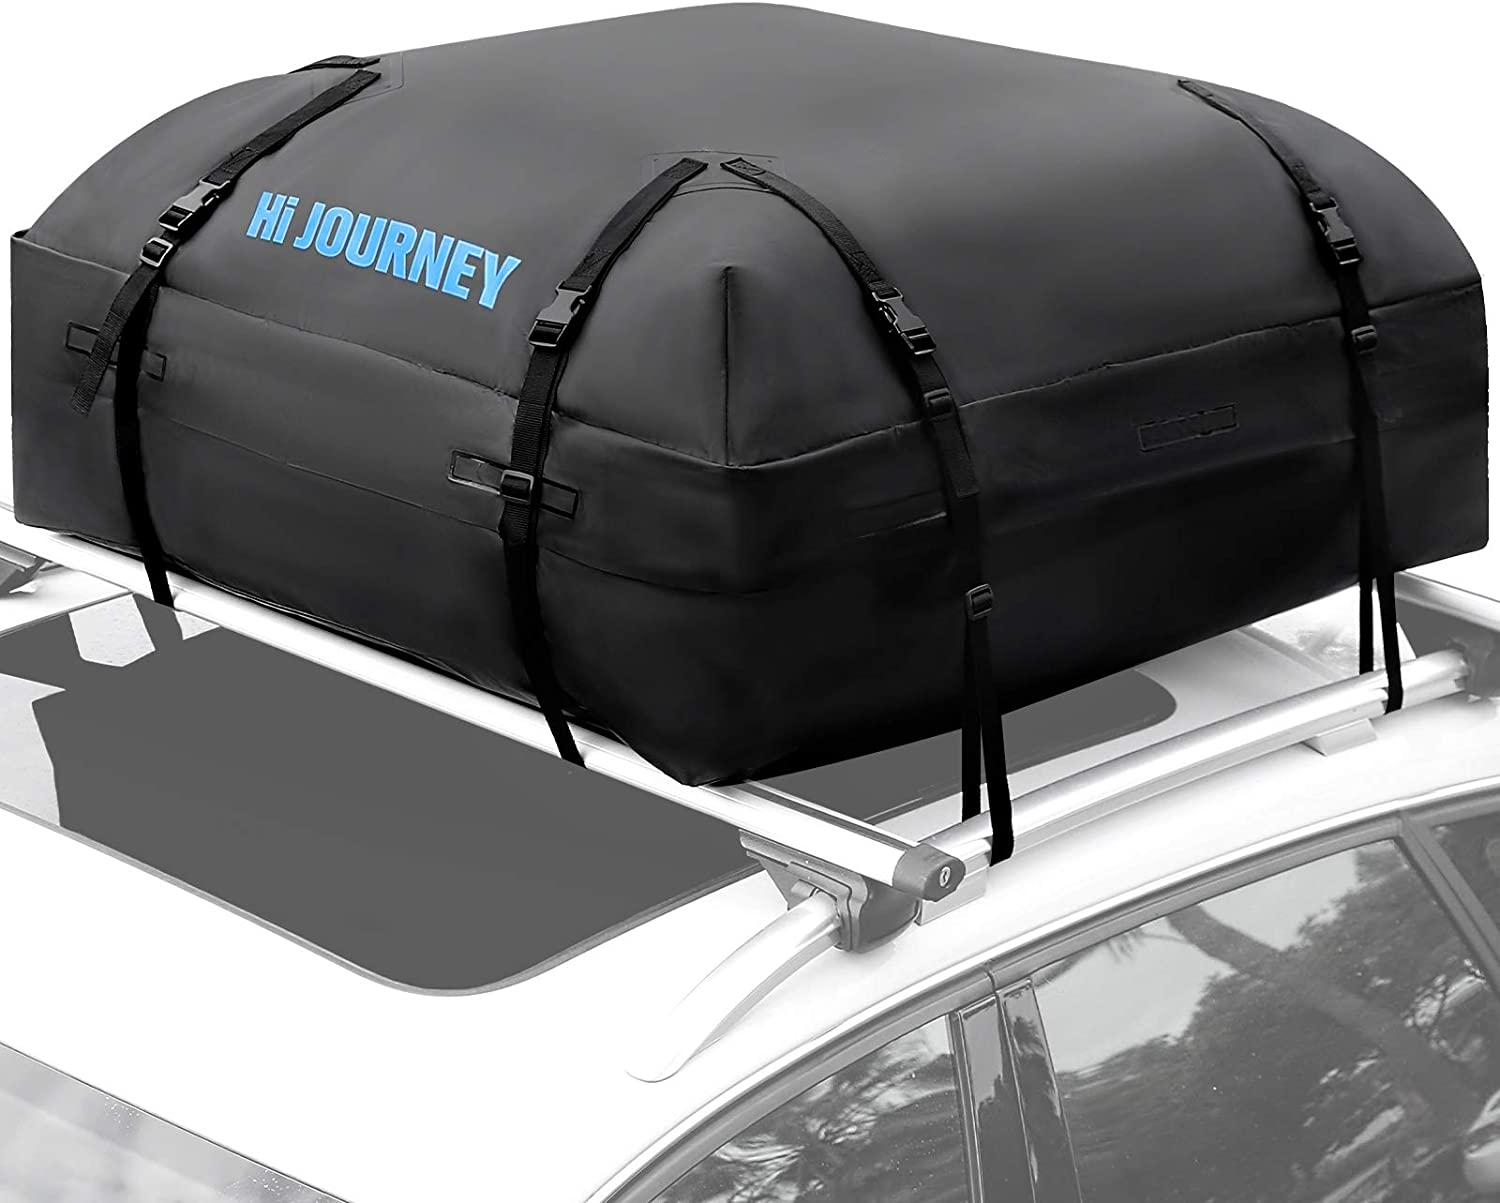 Tchipie Car Dedication Rooftop Cargo Carrier Bag Luggage Carr SUV Dealing full price reduction Roof Top